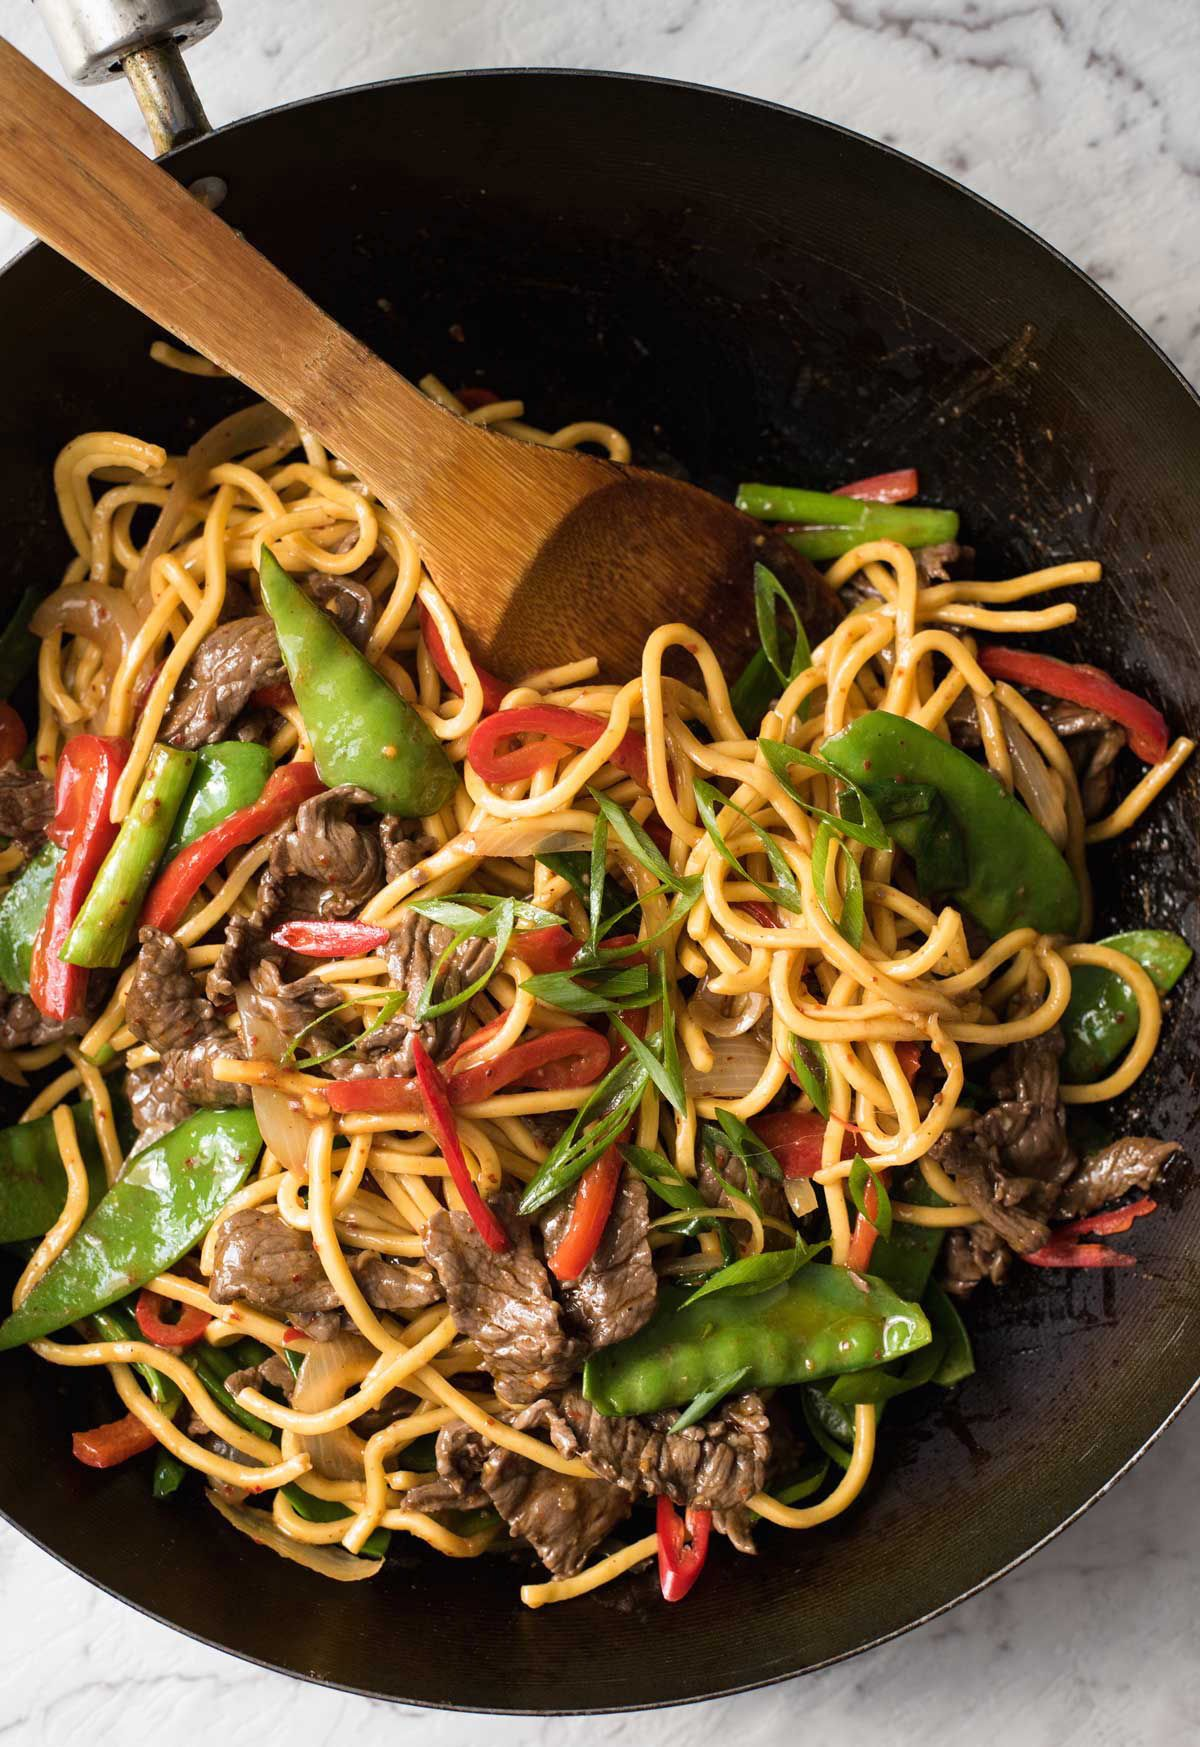 Spicy Beef Hokkien Noodles Recipe Spicy Beef Food Beef Dishes